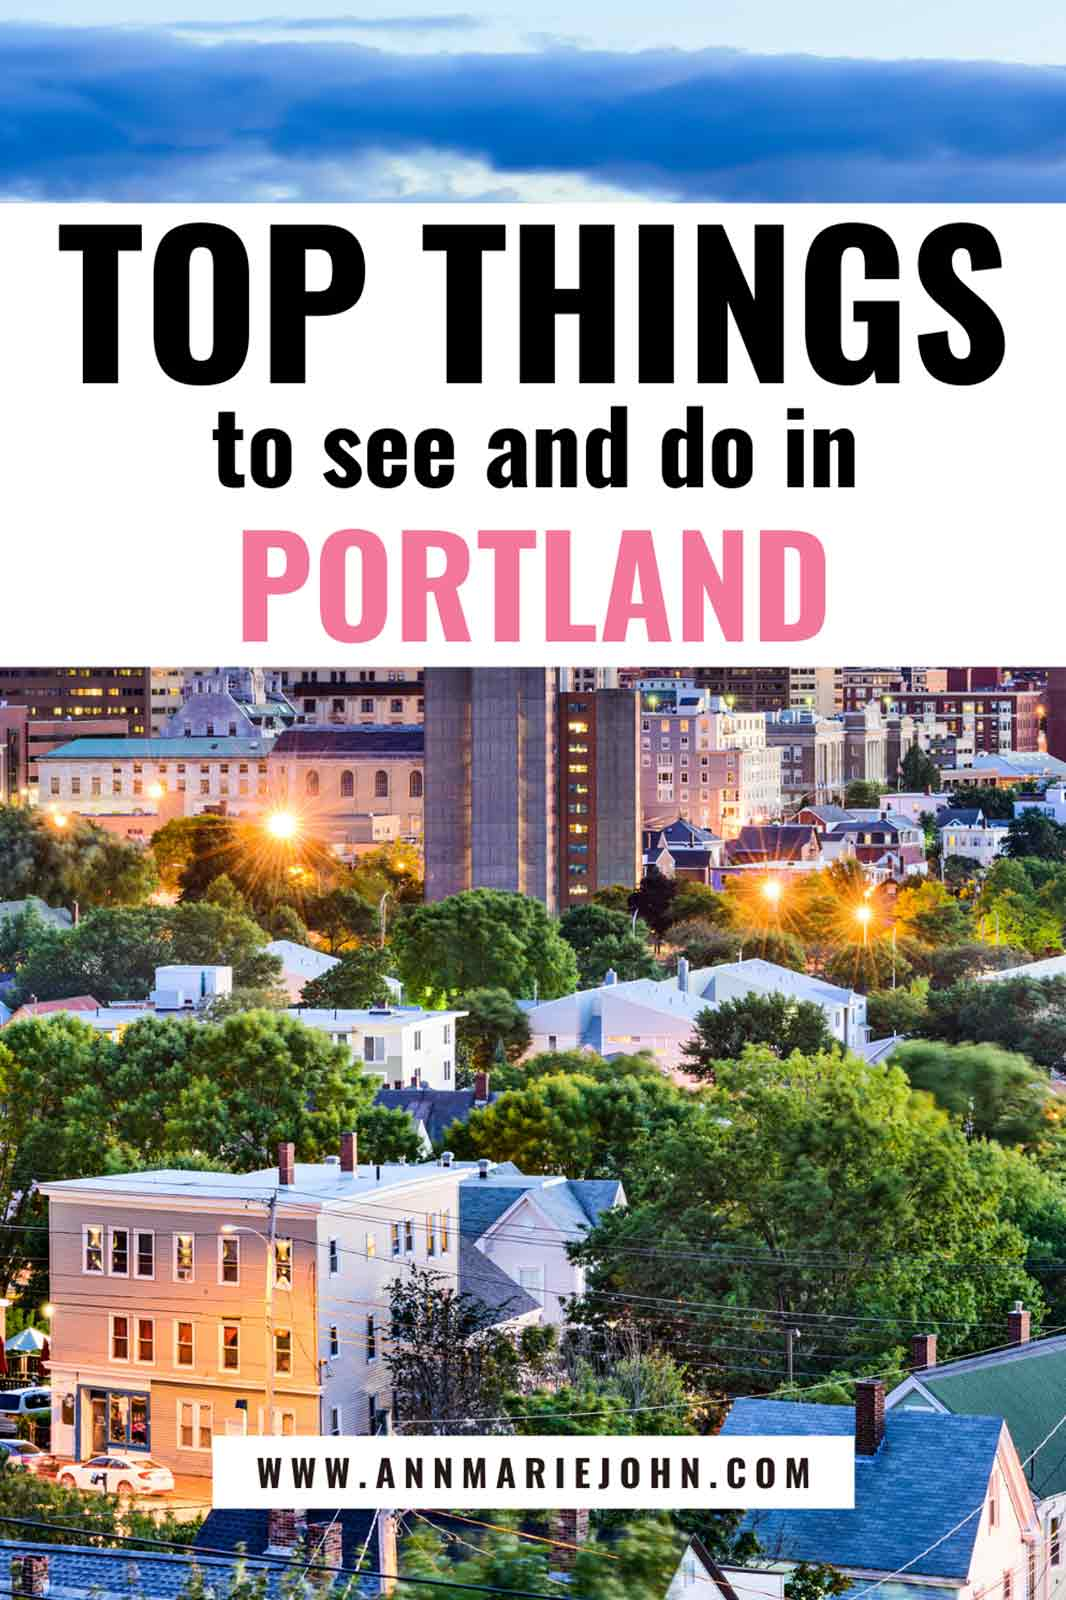 Top Things To See and Do in Portland